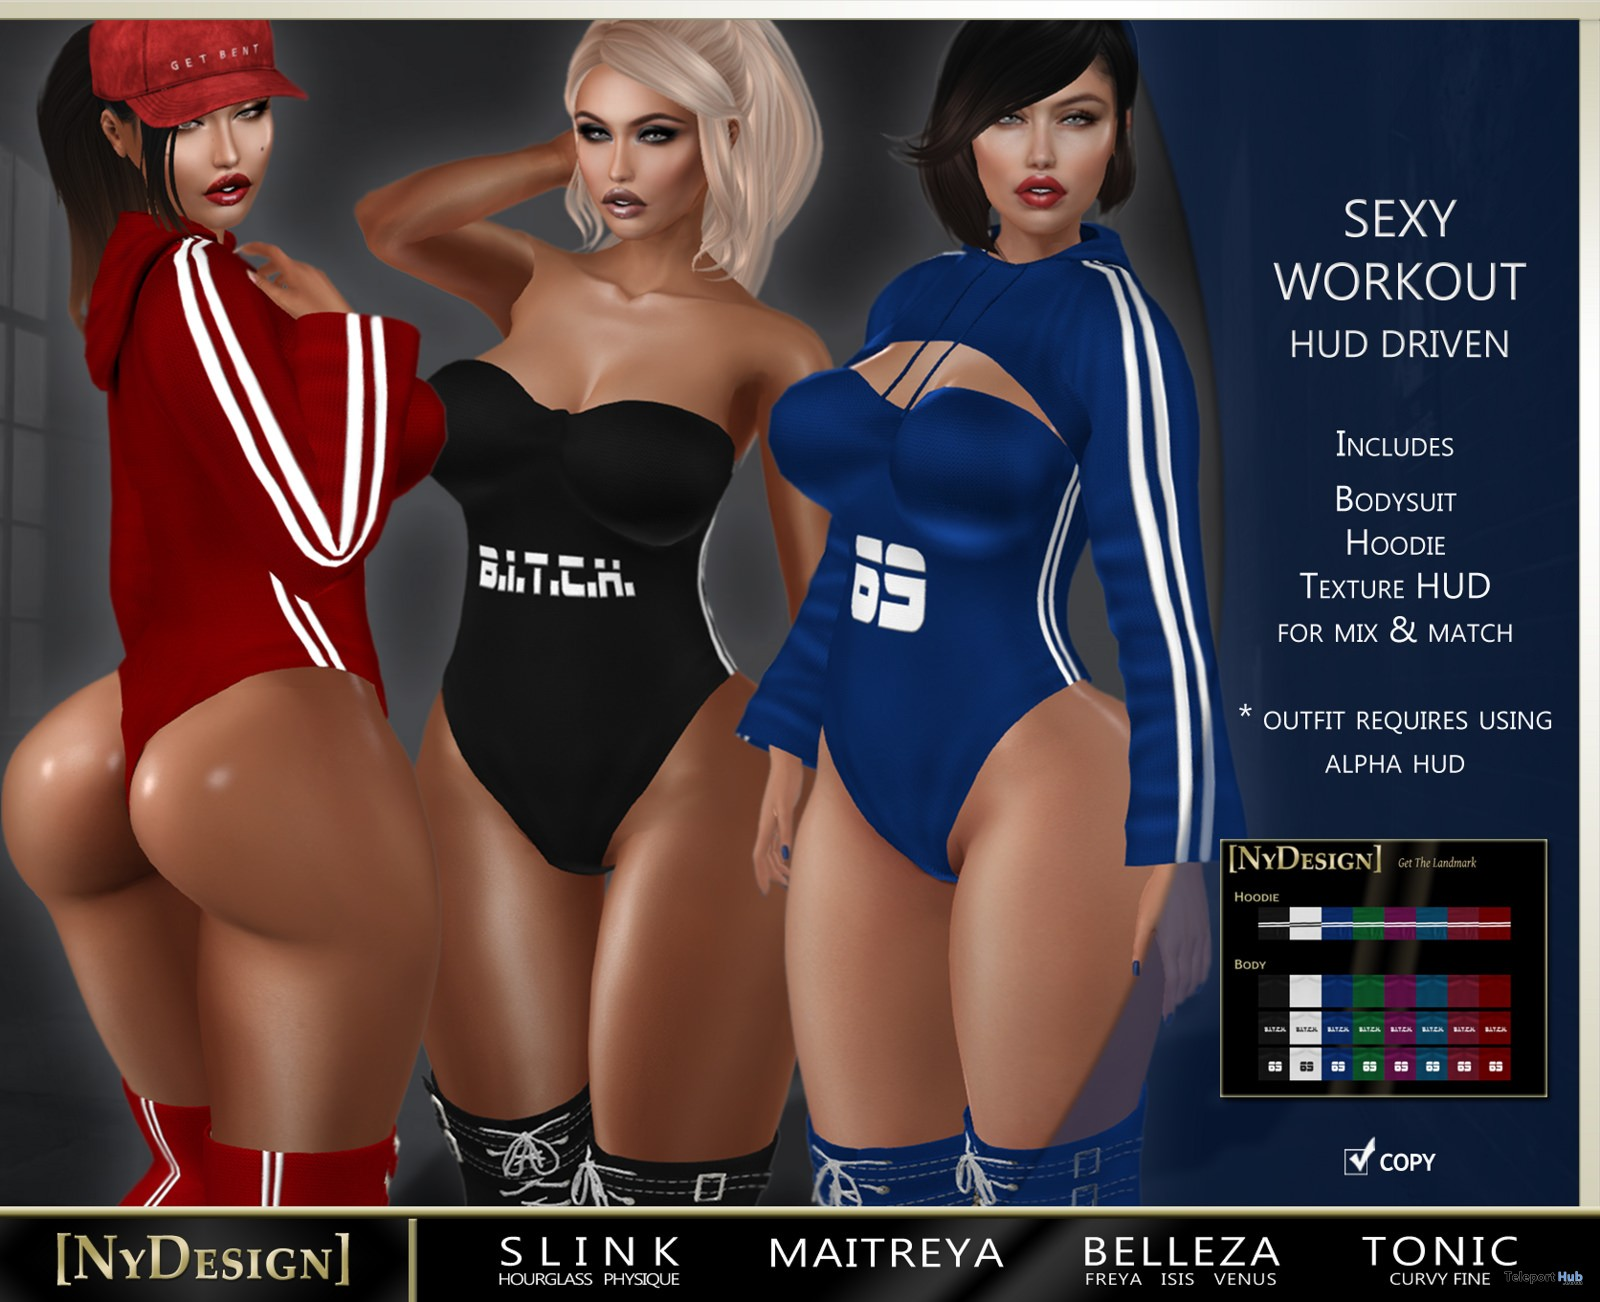 Sexy Workout Outfit Fatpack With HUD 1L Promo Gift by NyDesign - Teleport Hub - teleporthub.com - Teleport Hub - teleporthub.com